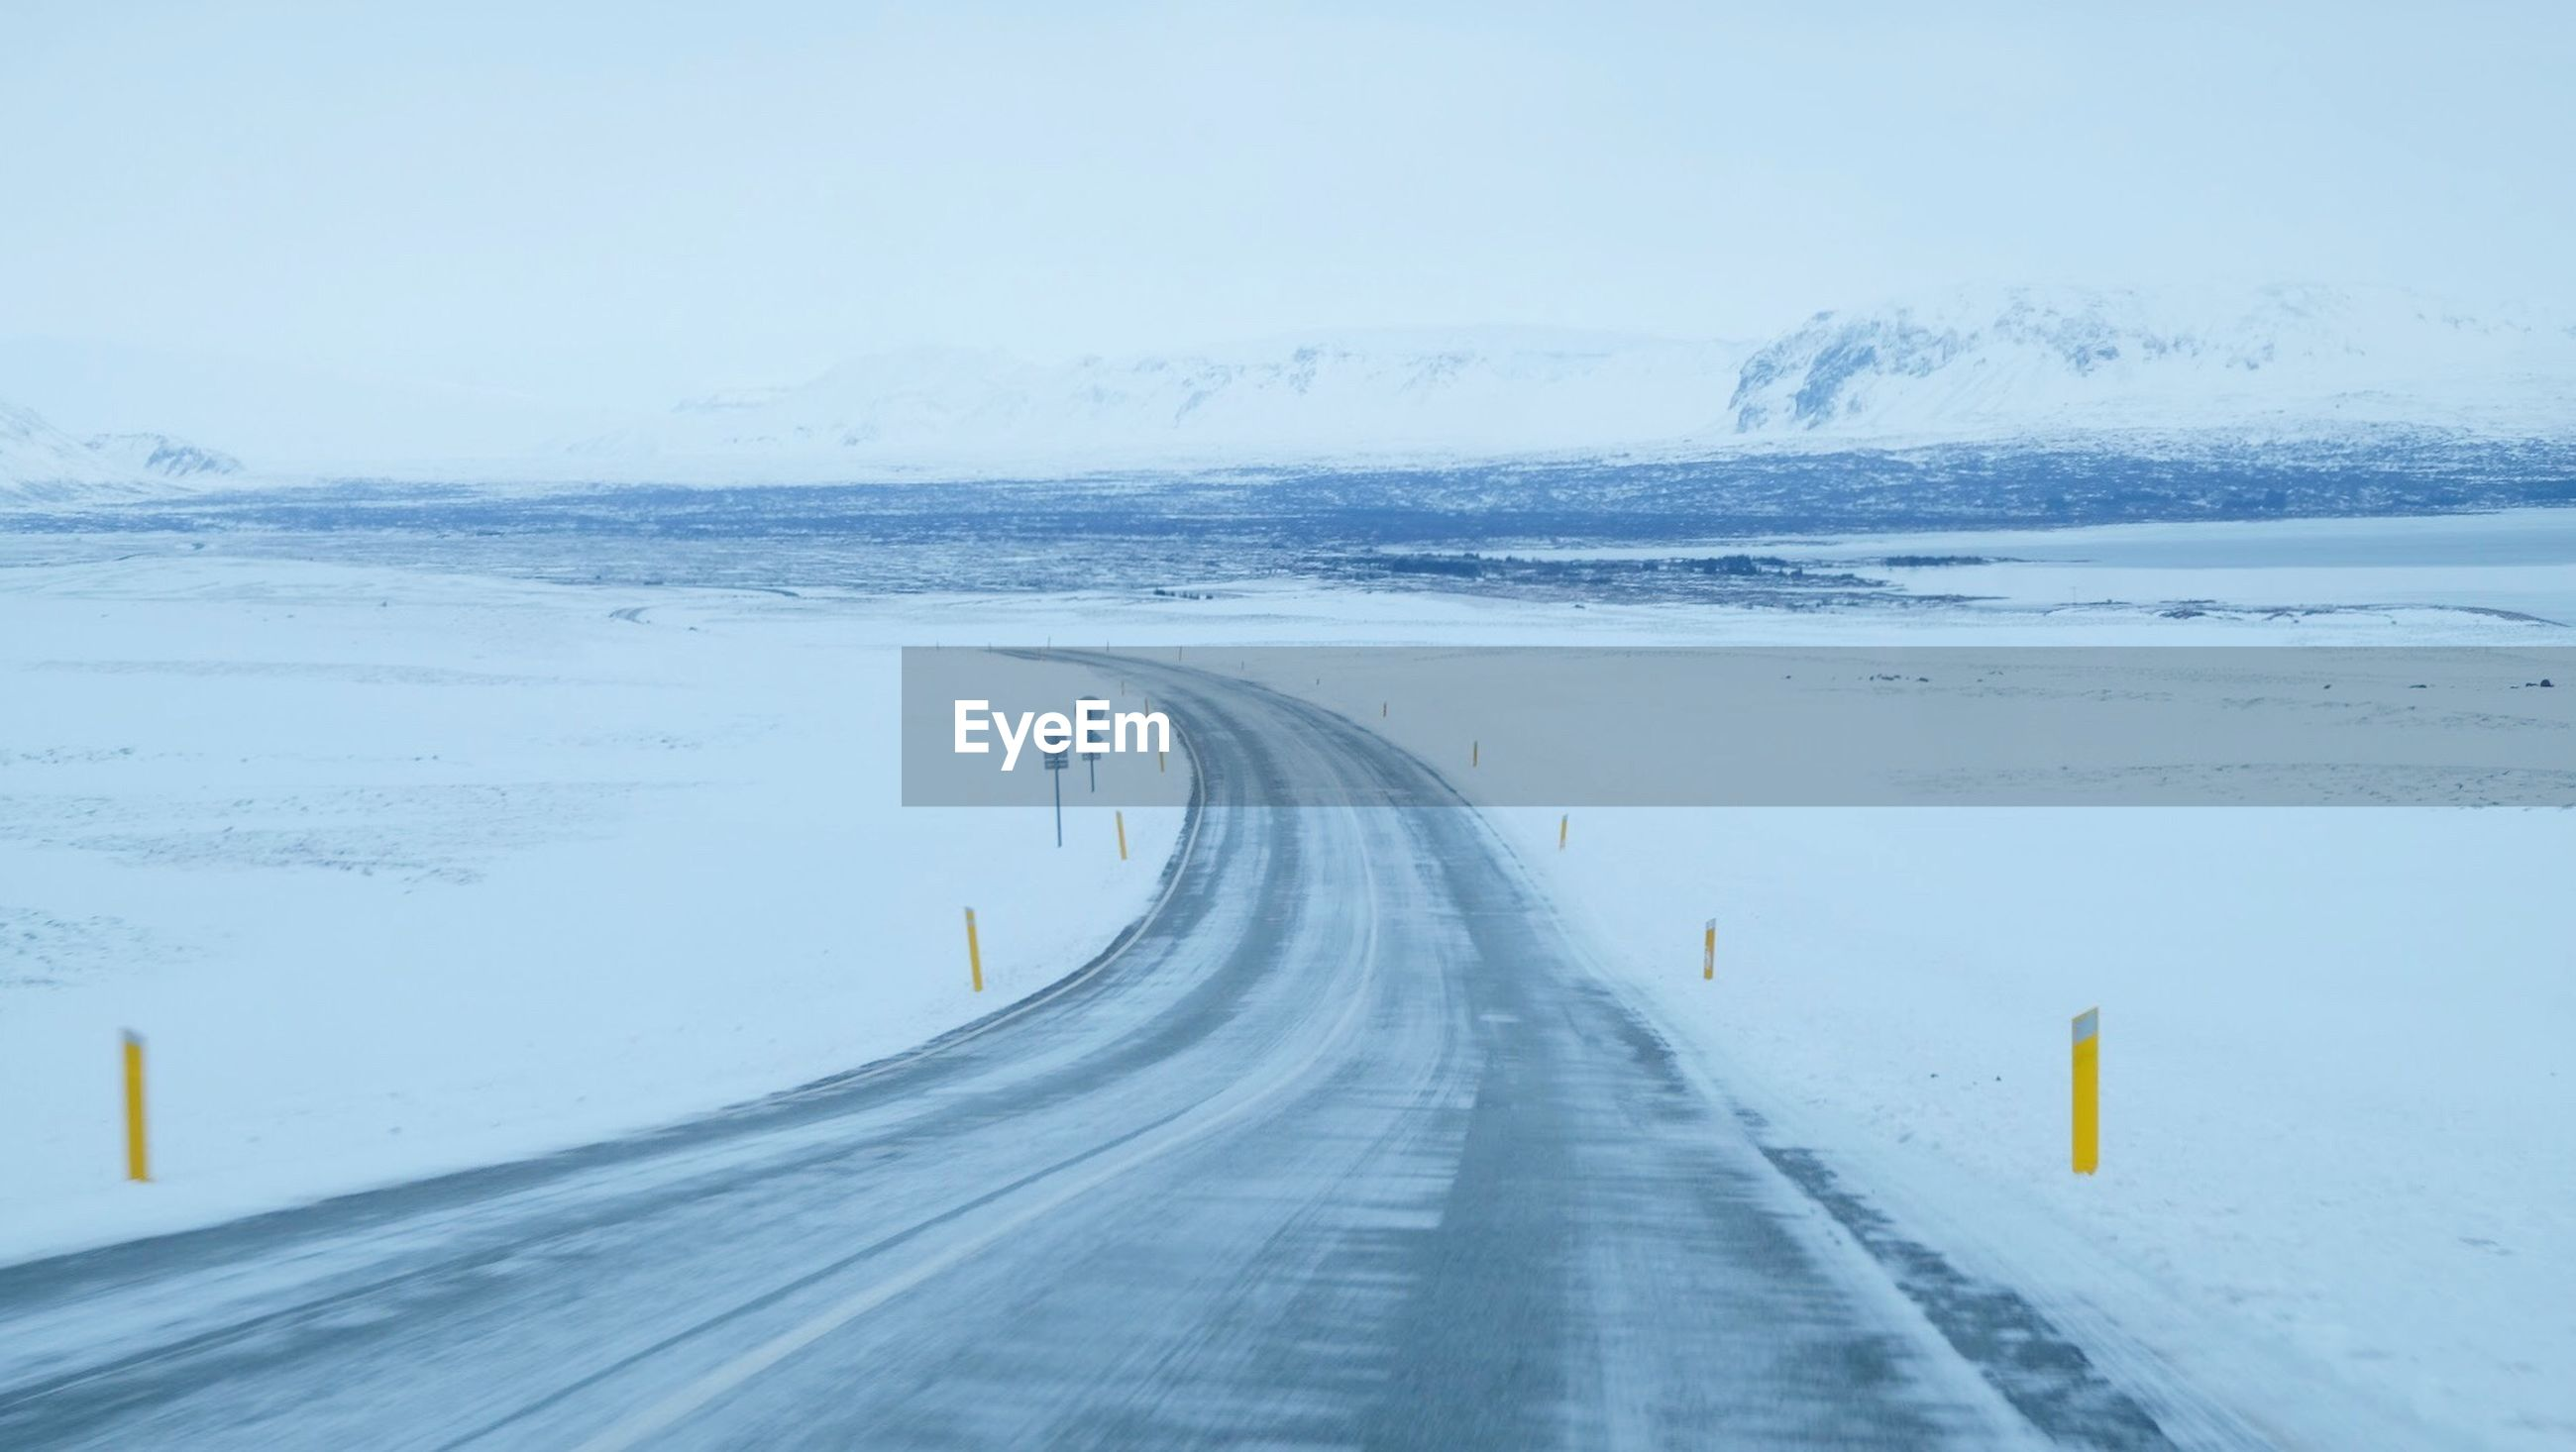 SNOW COVERED ROAD PASSING THROUGH LANDSCAPE